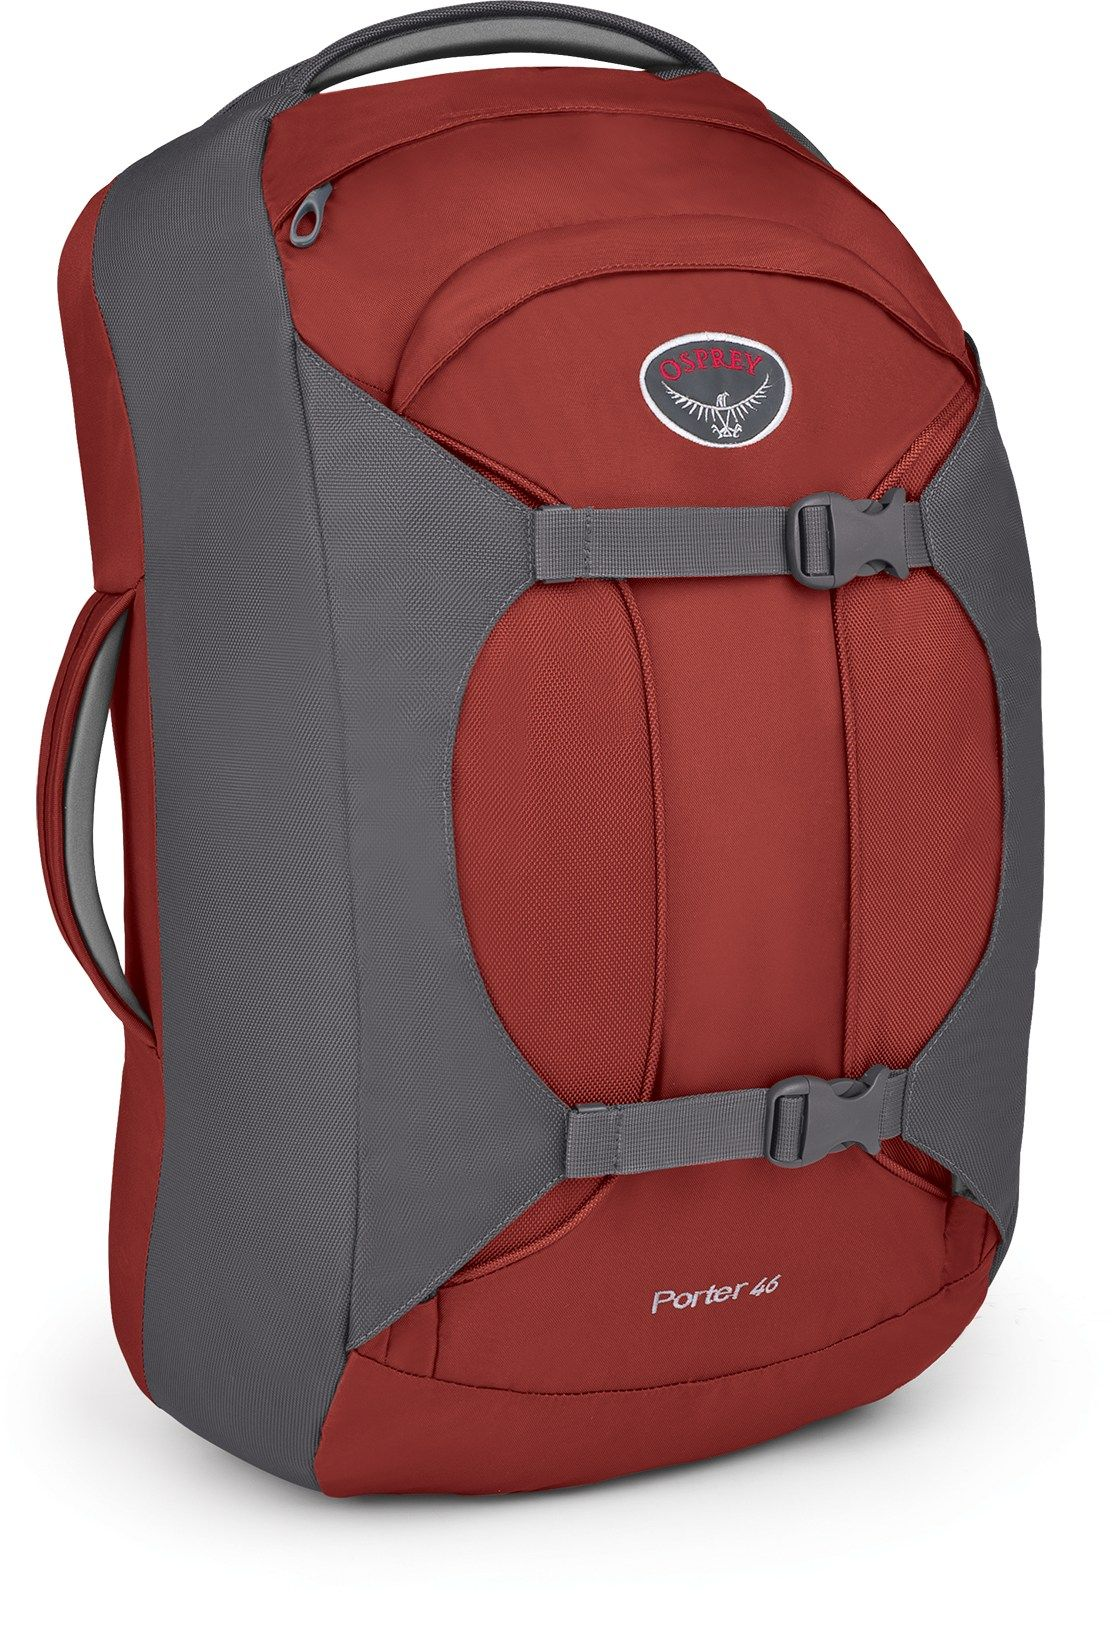 Osprey Porter 46 Travel Pack - Free Shipping at REI.com | Travel ...